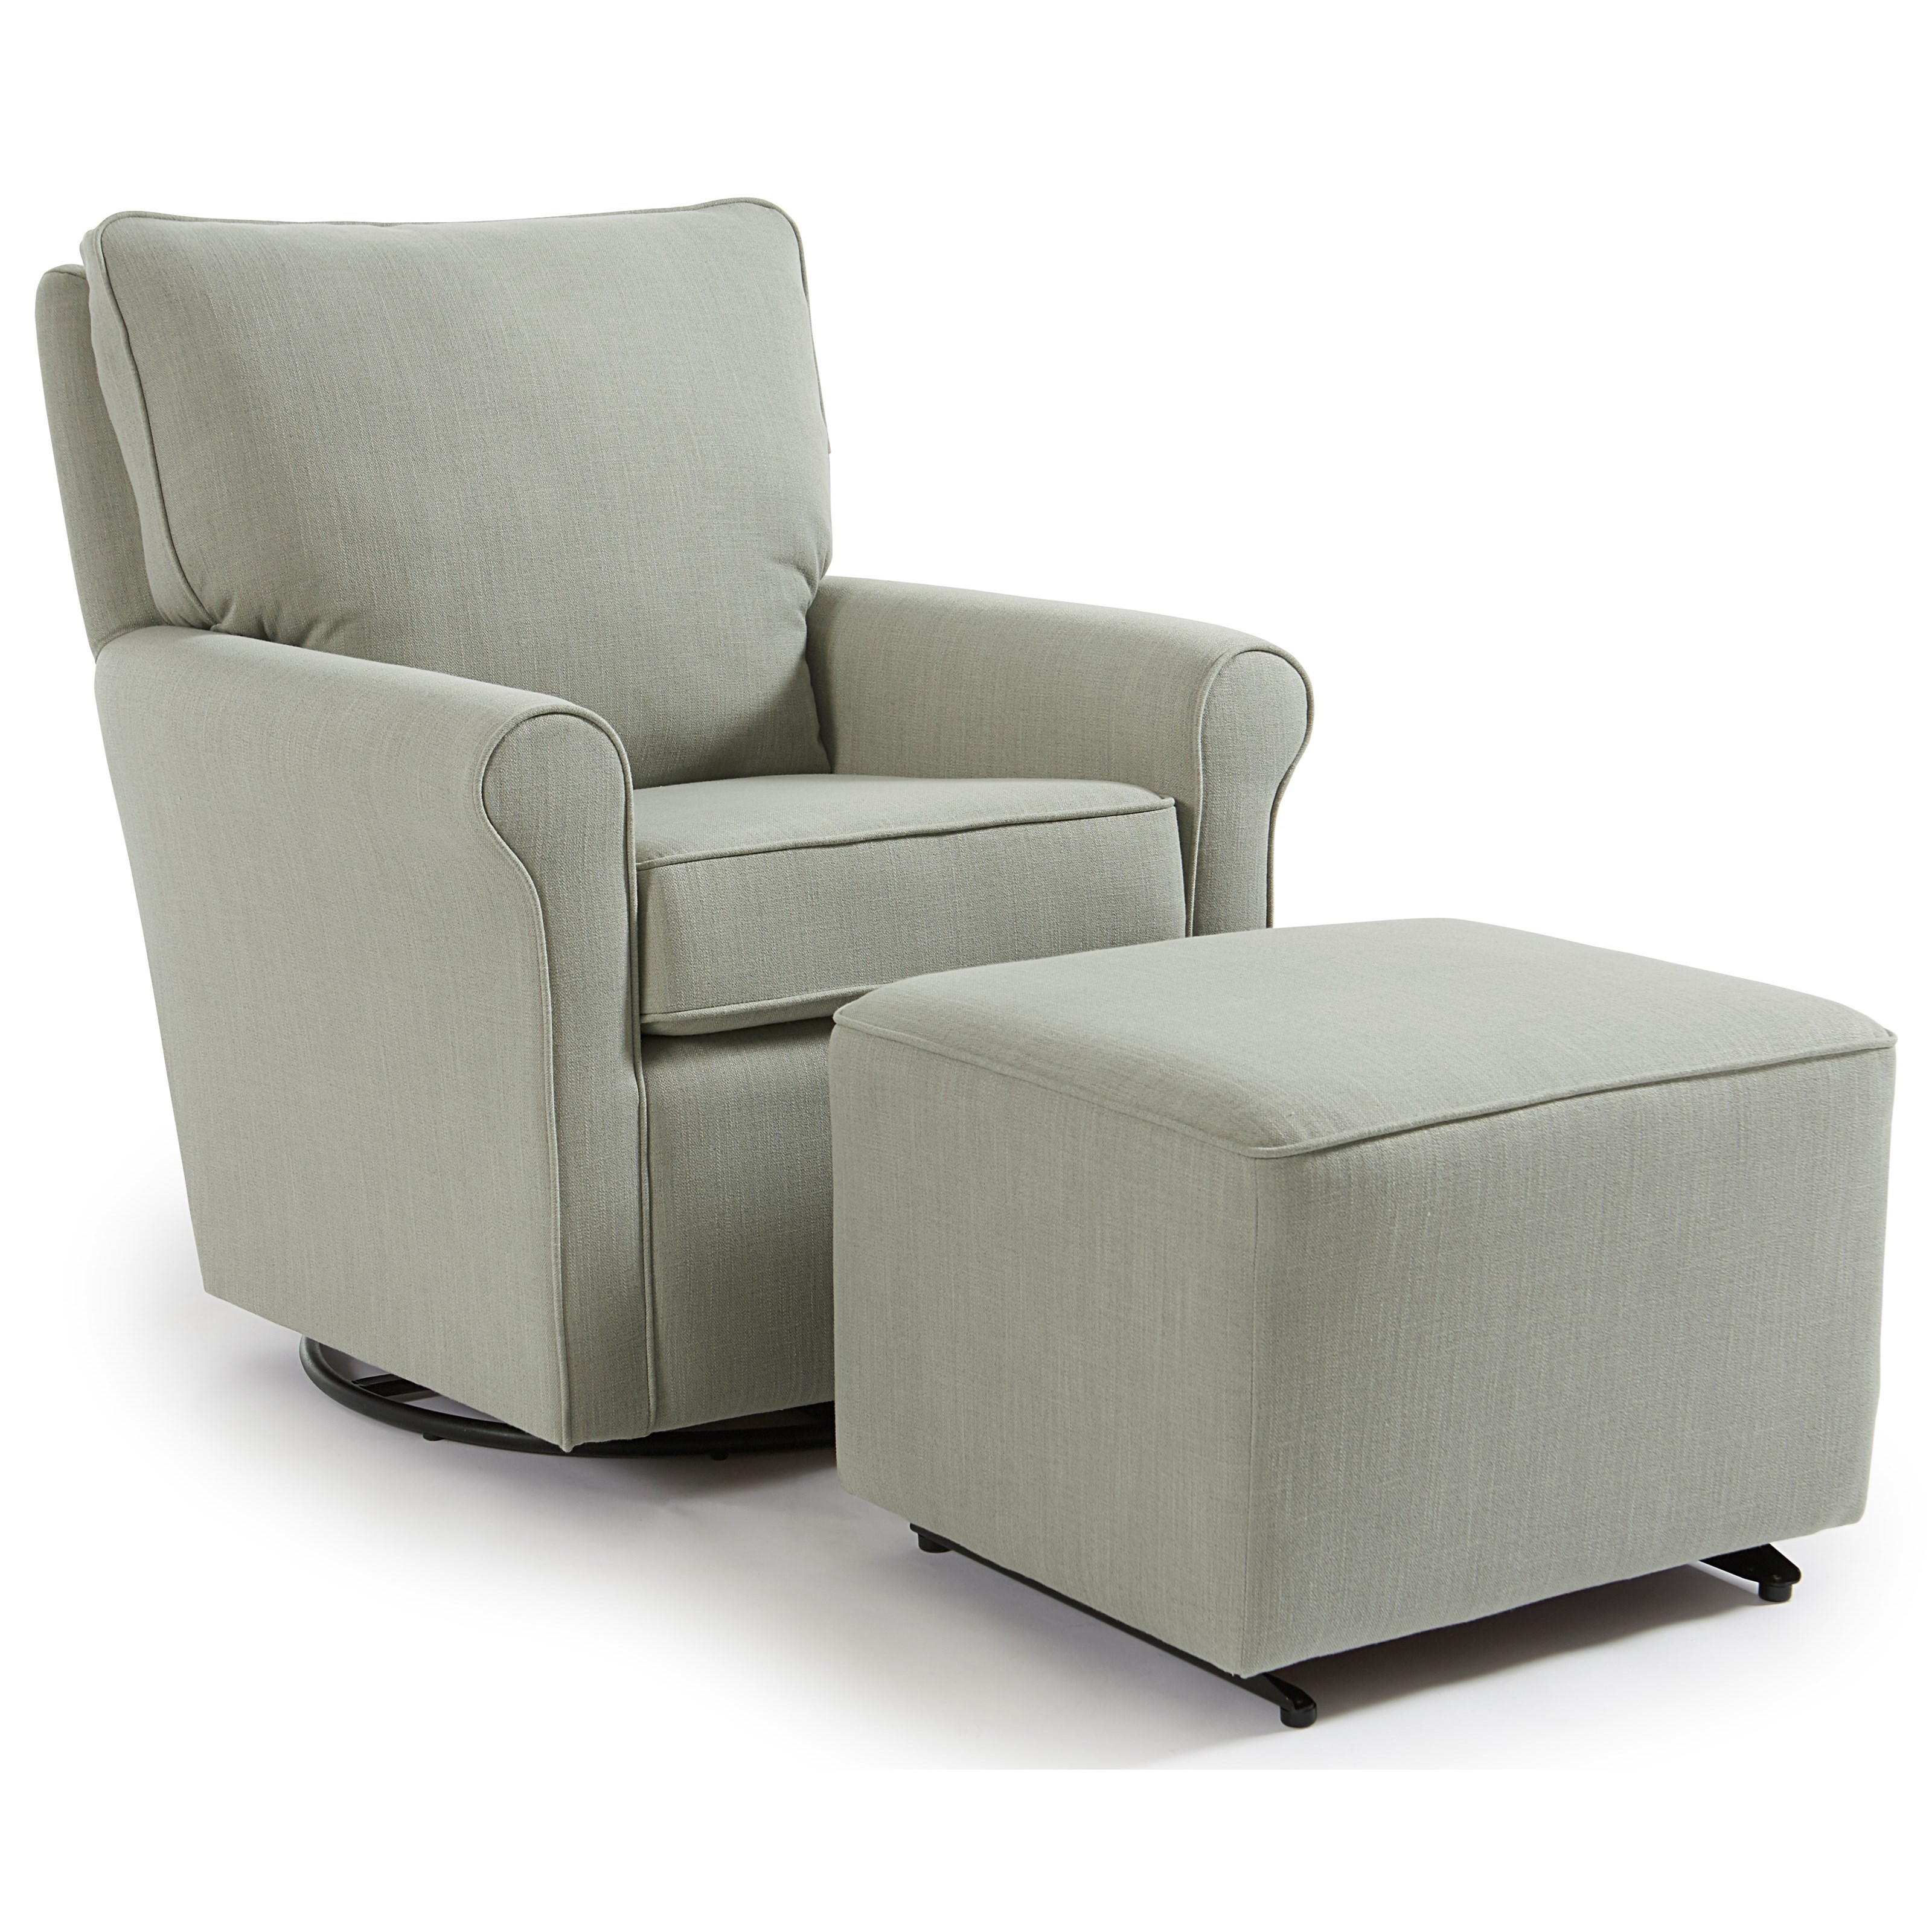 Kacey Swivel Glider Chair & Ottoman by Best Home Furnishings at Jacksonville Furniture Mart